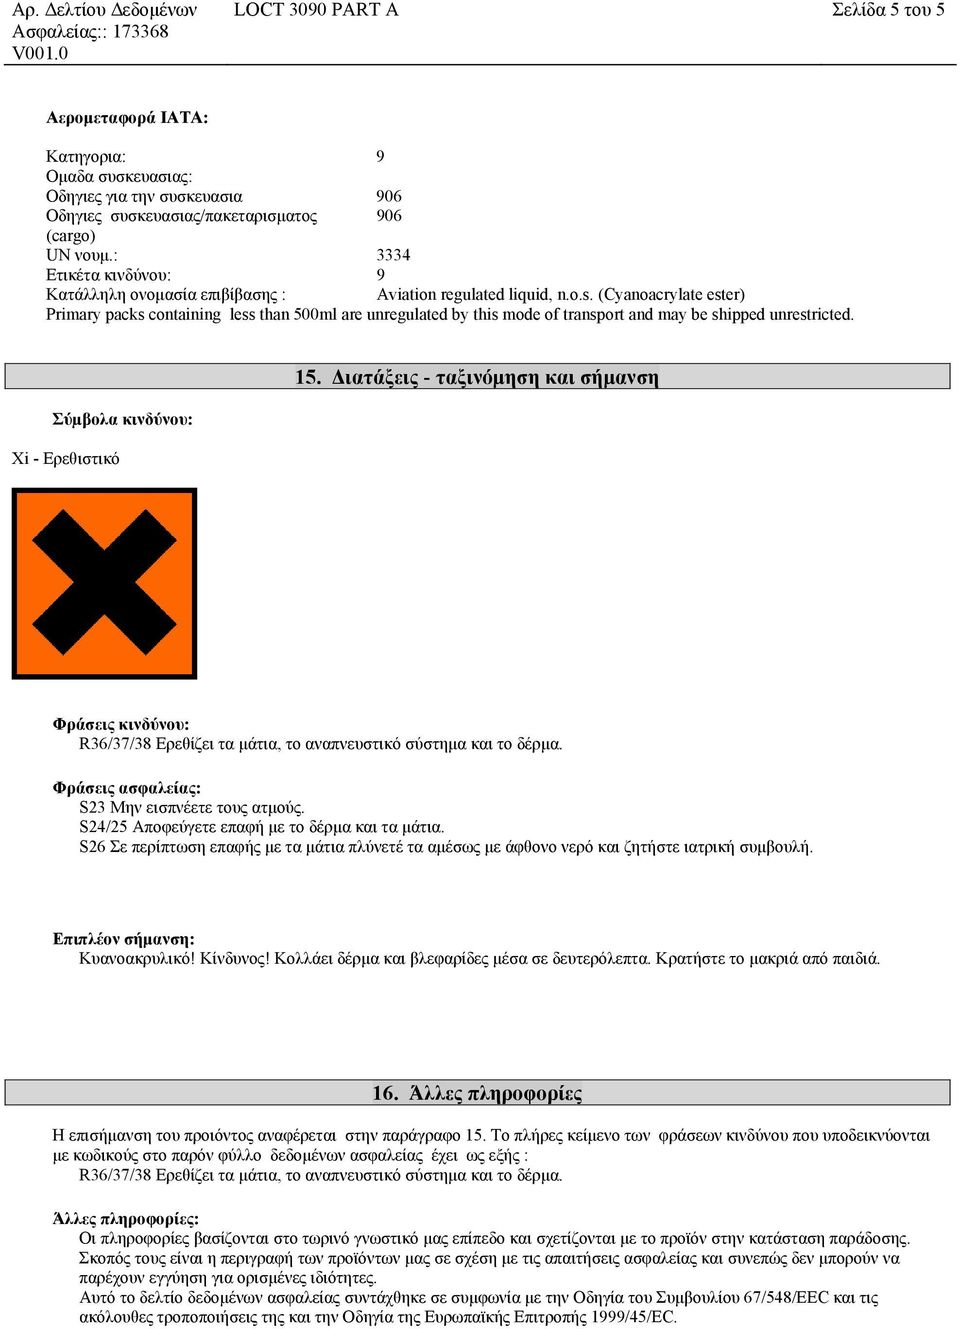 (Cyanoacrylate ester) Primary packs containing less than 500ml are unregulated by this mode of transport and may be shipped unrestricted. Σύµβολα κινδύνου: Xi - Ερεθιστικό 15.